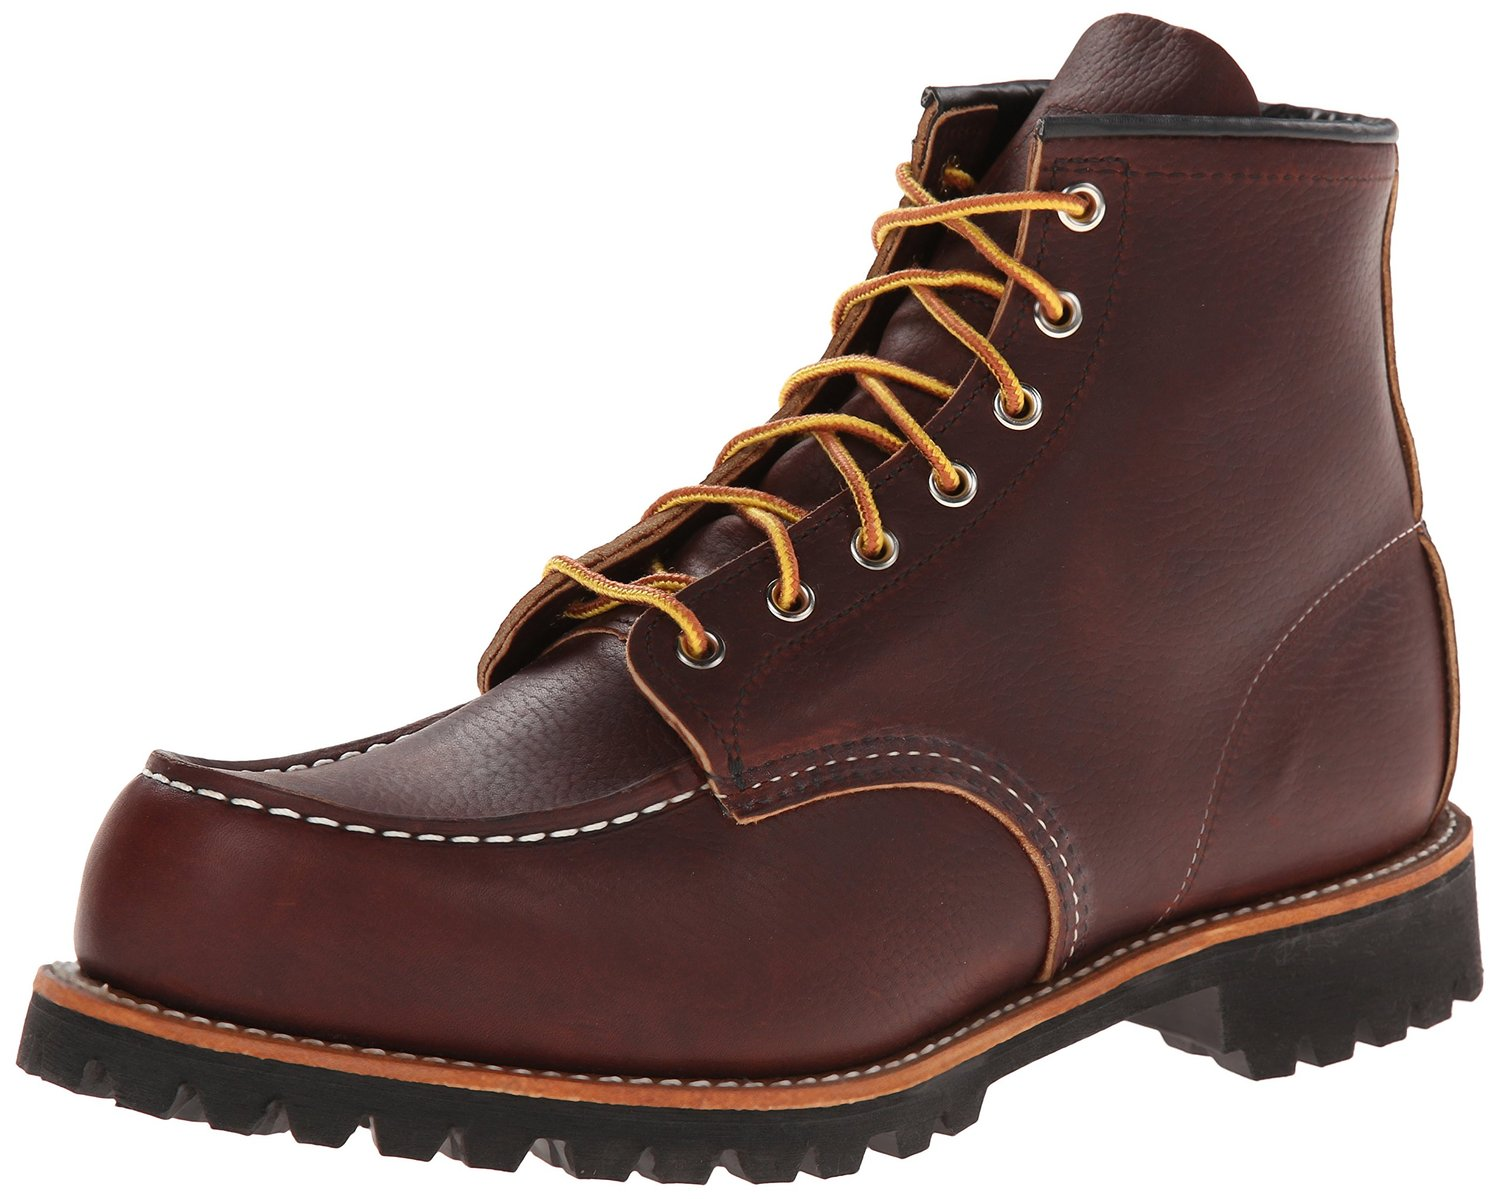 Red Wing Work Boots Sale sHg08Hgt